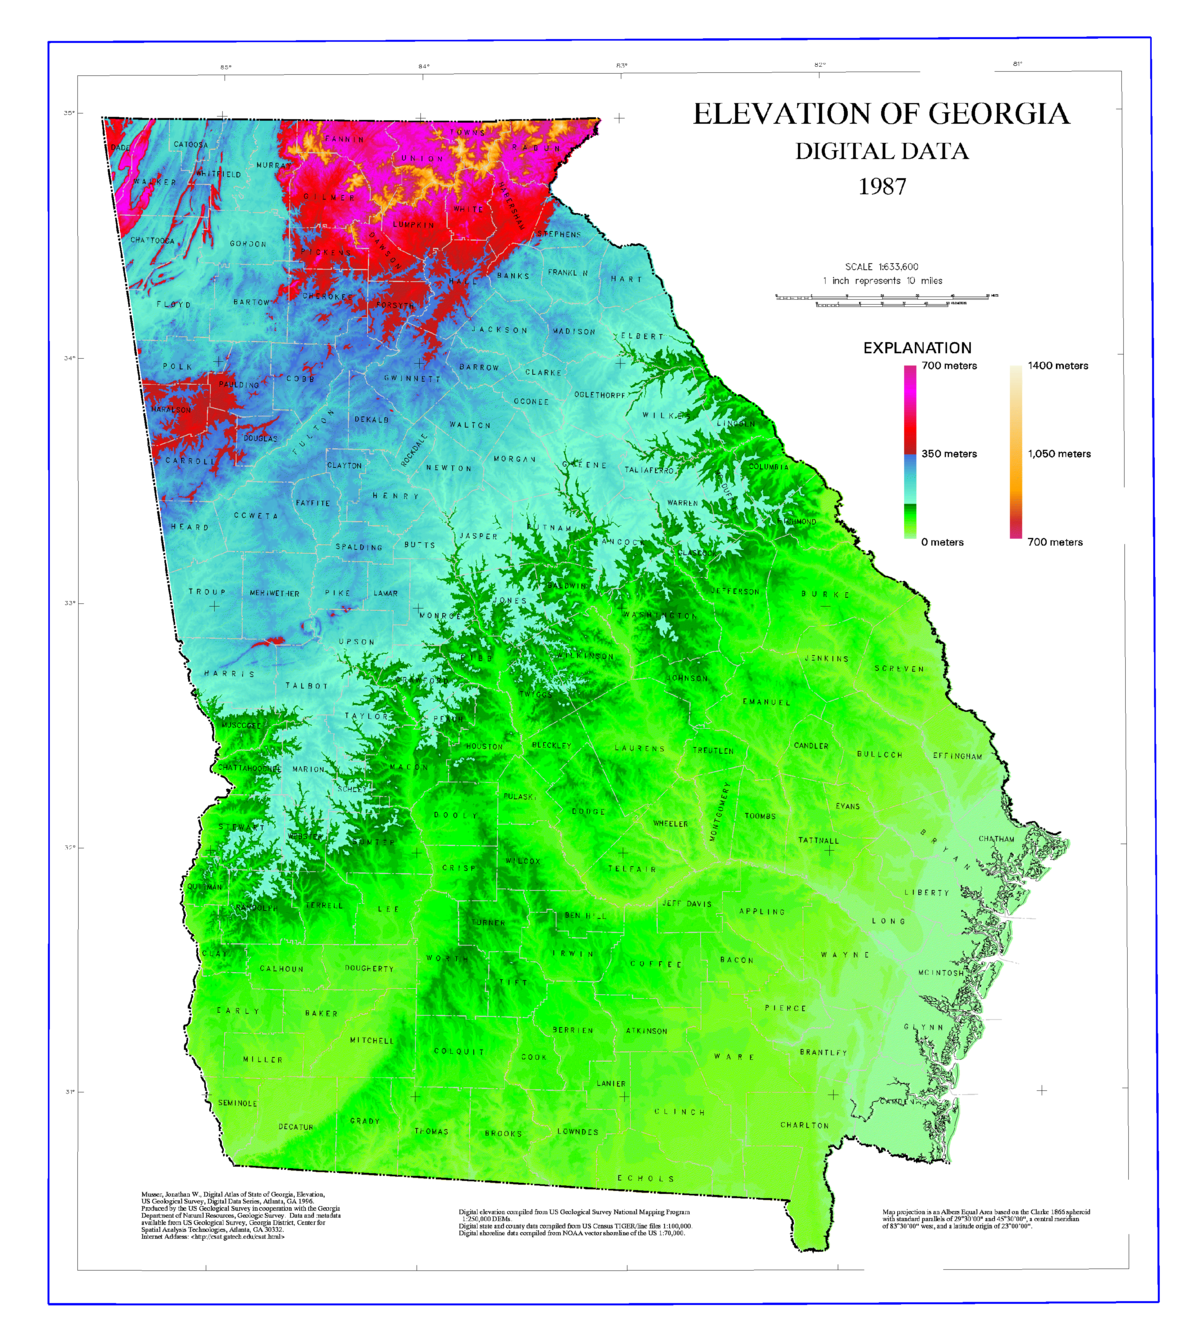 Geography Of Georgia US State Wikipedia - Altitude above sea level map